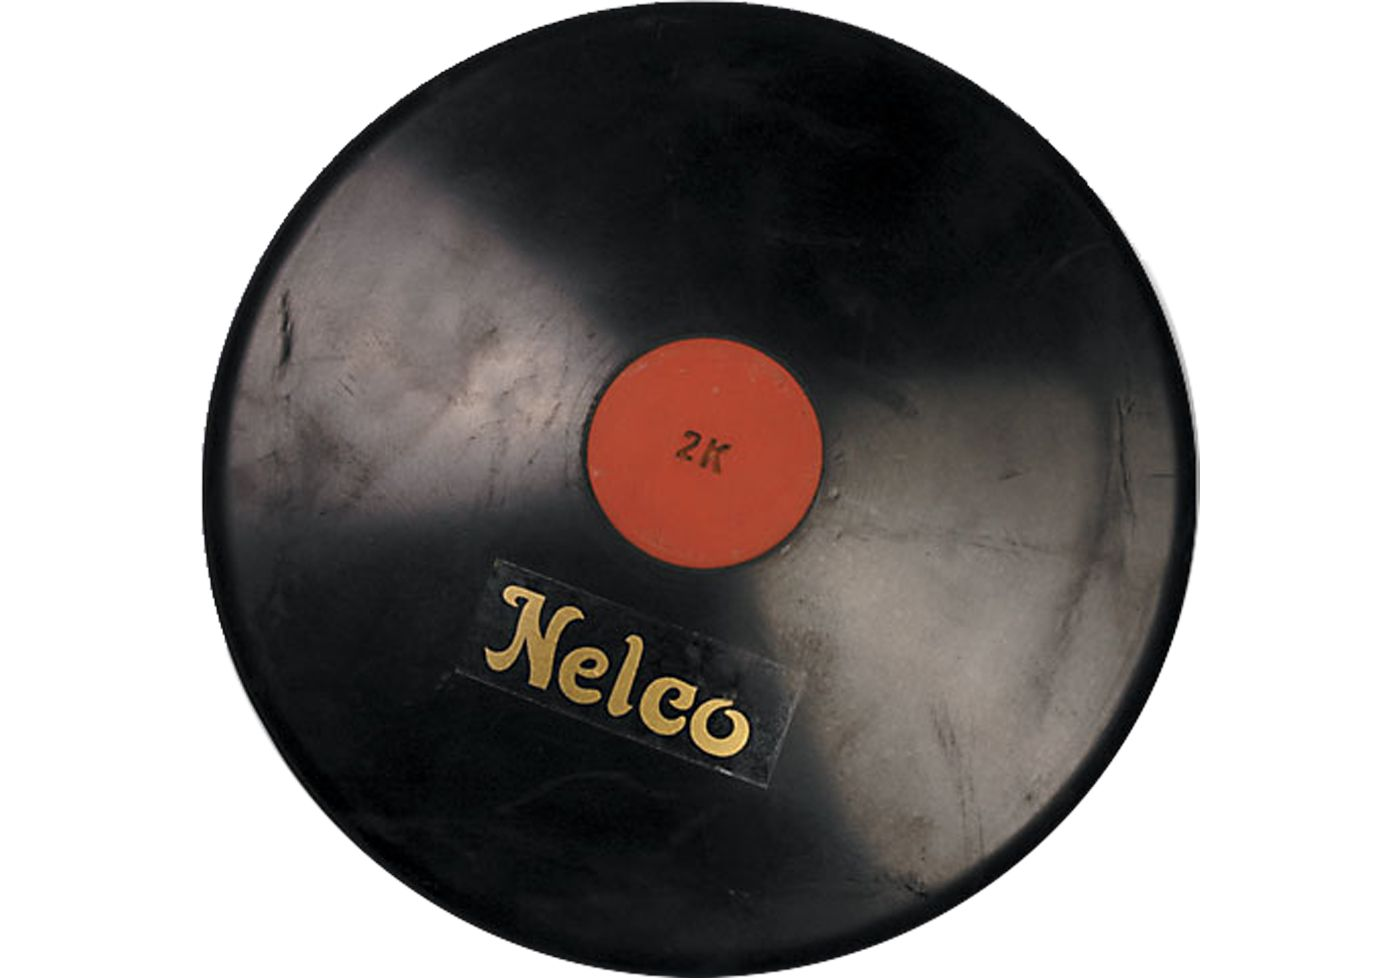 Nelco 1.6K Official Black Rubber Discus